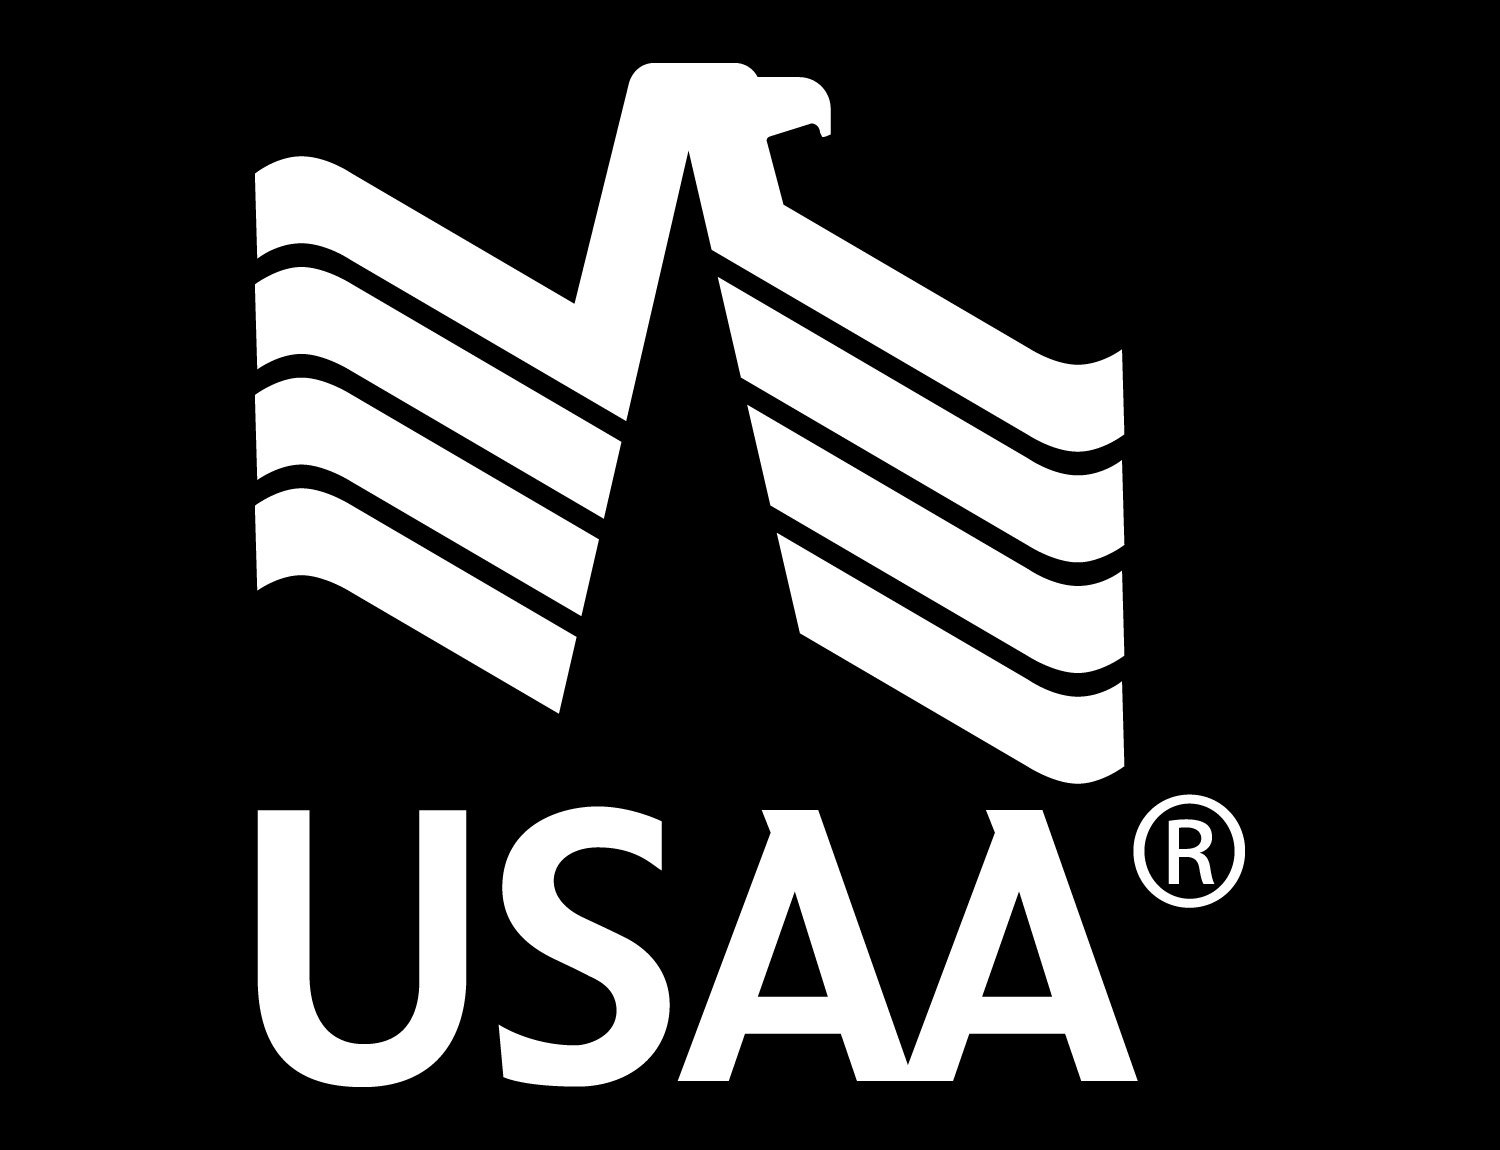 Usaa Logo Usaa Symbol Meaning History And Evolution